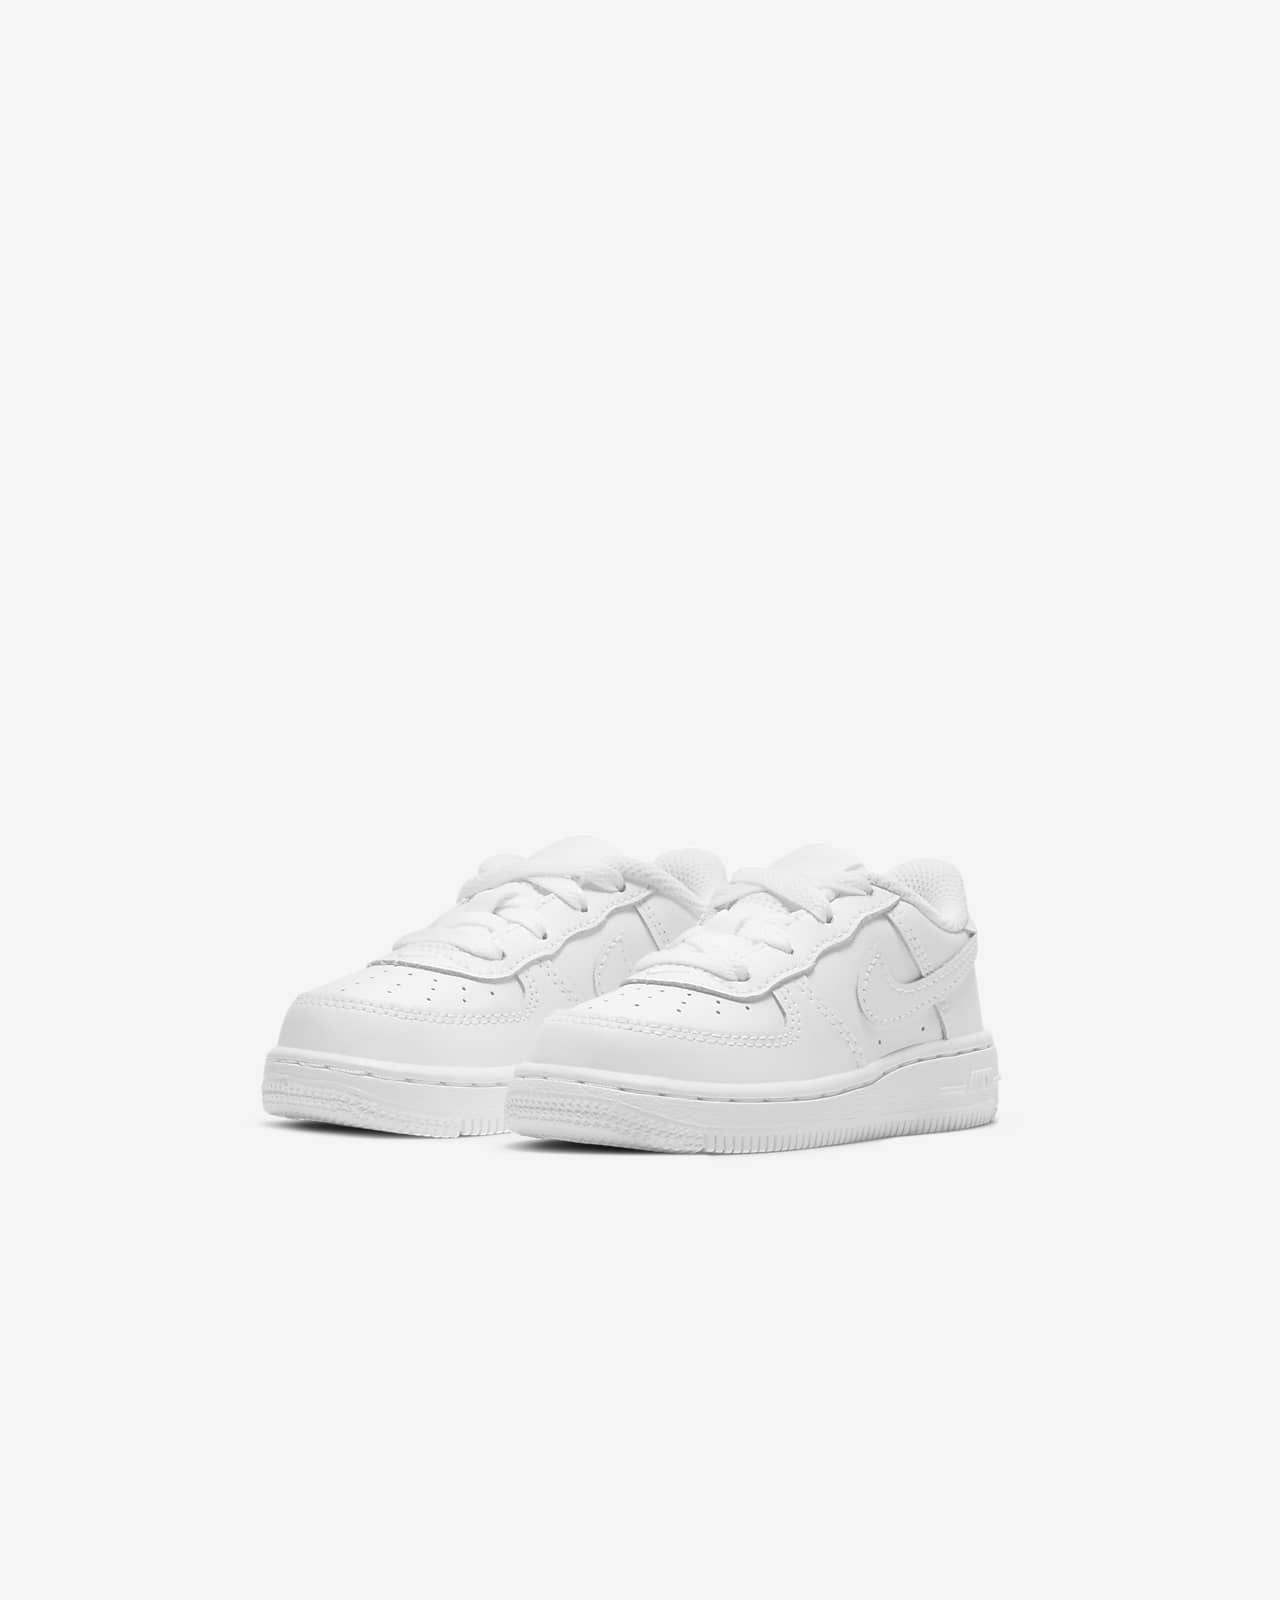 Nike Force 1 LE Baby/Toddler Shoe